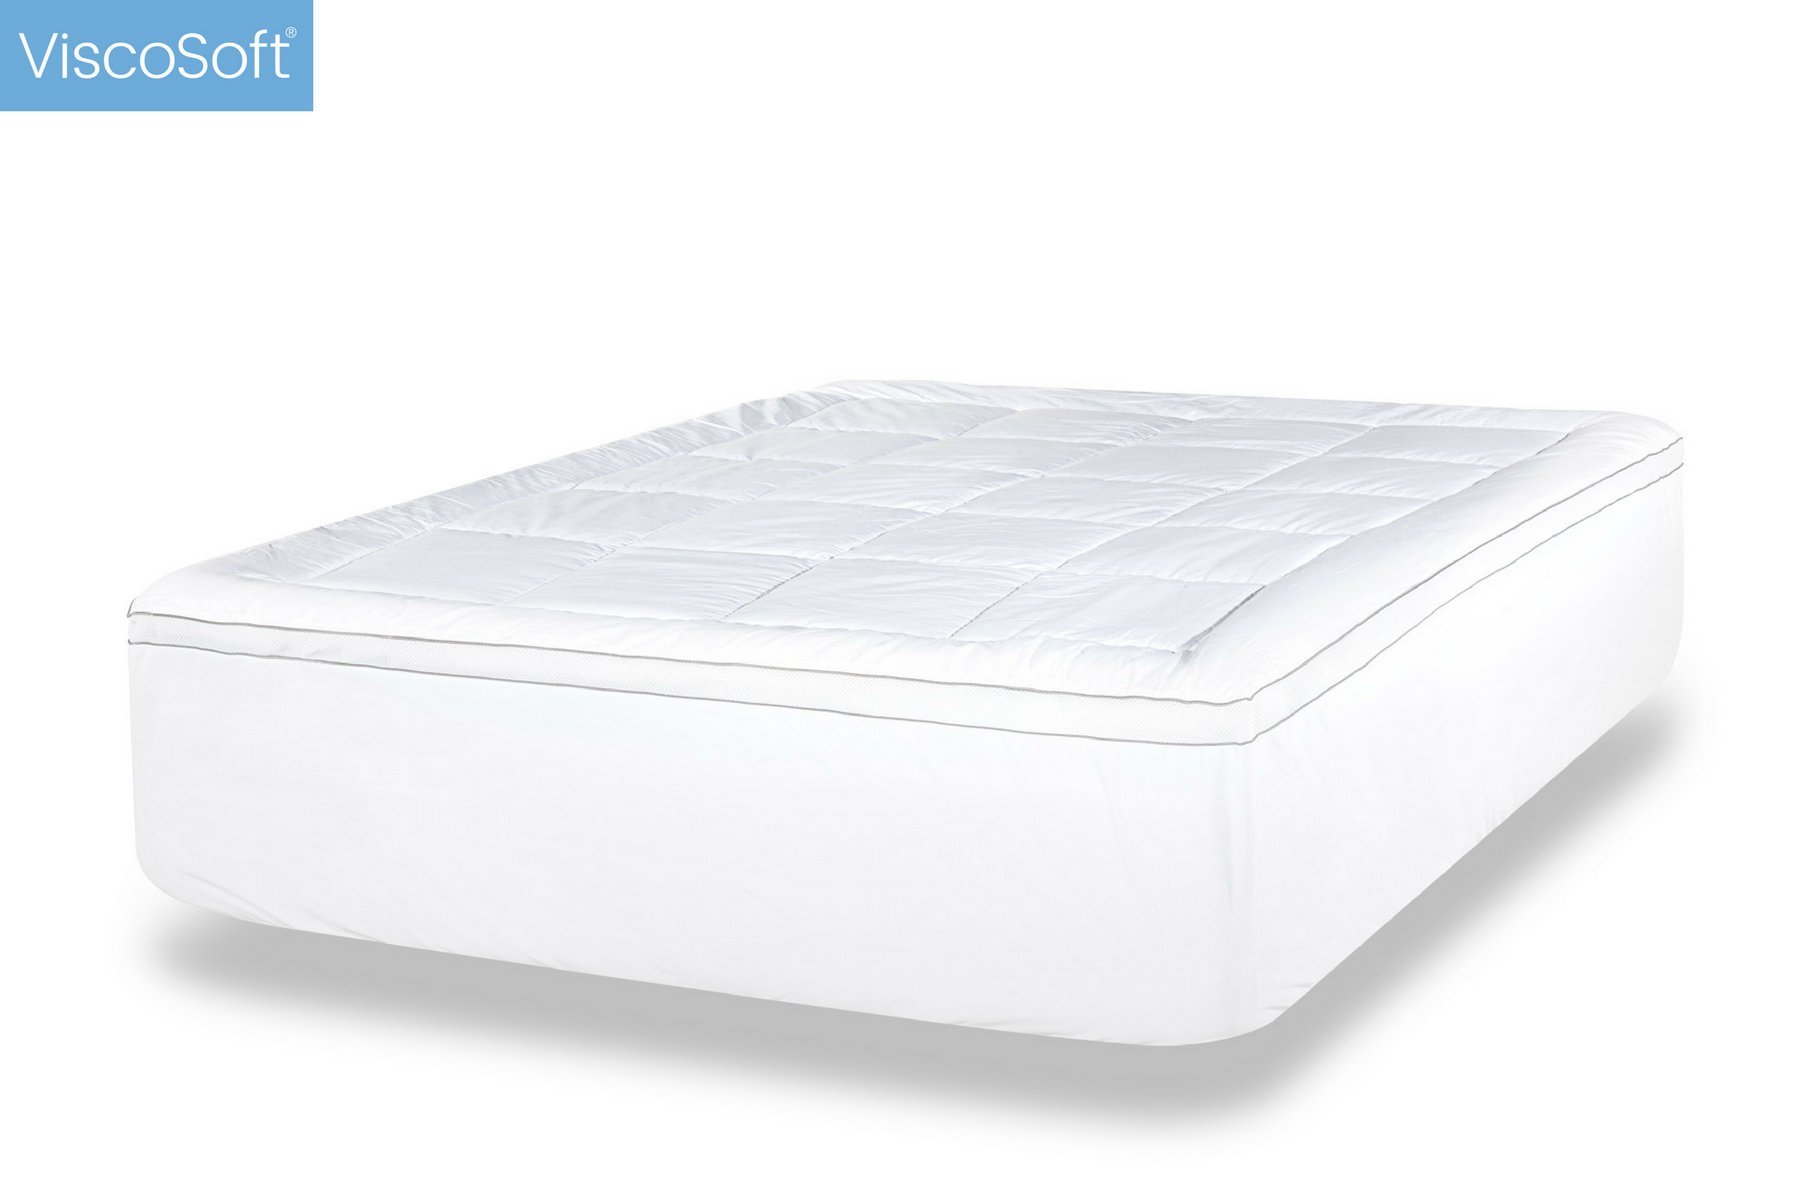 ViscoSoft 4-Inch King Luxury Dual Layer Gel-Infused Memory Foam Mattress Topper - Includes Quilted, Down-Alternative Pillow Top Cover - Made in USA